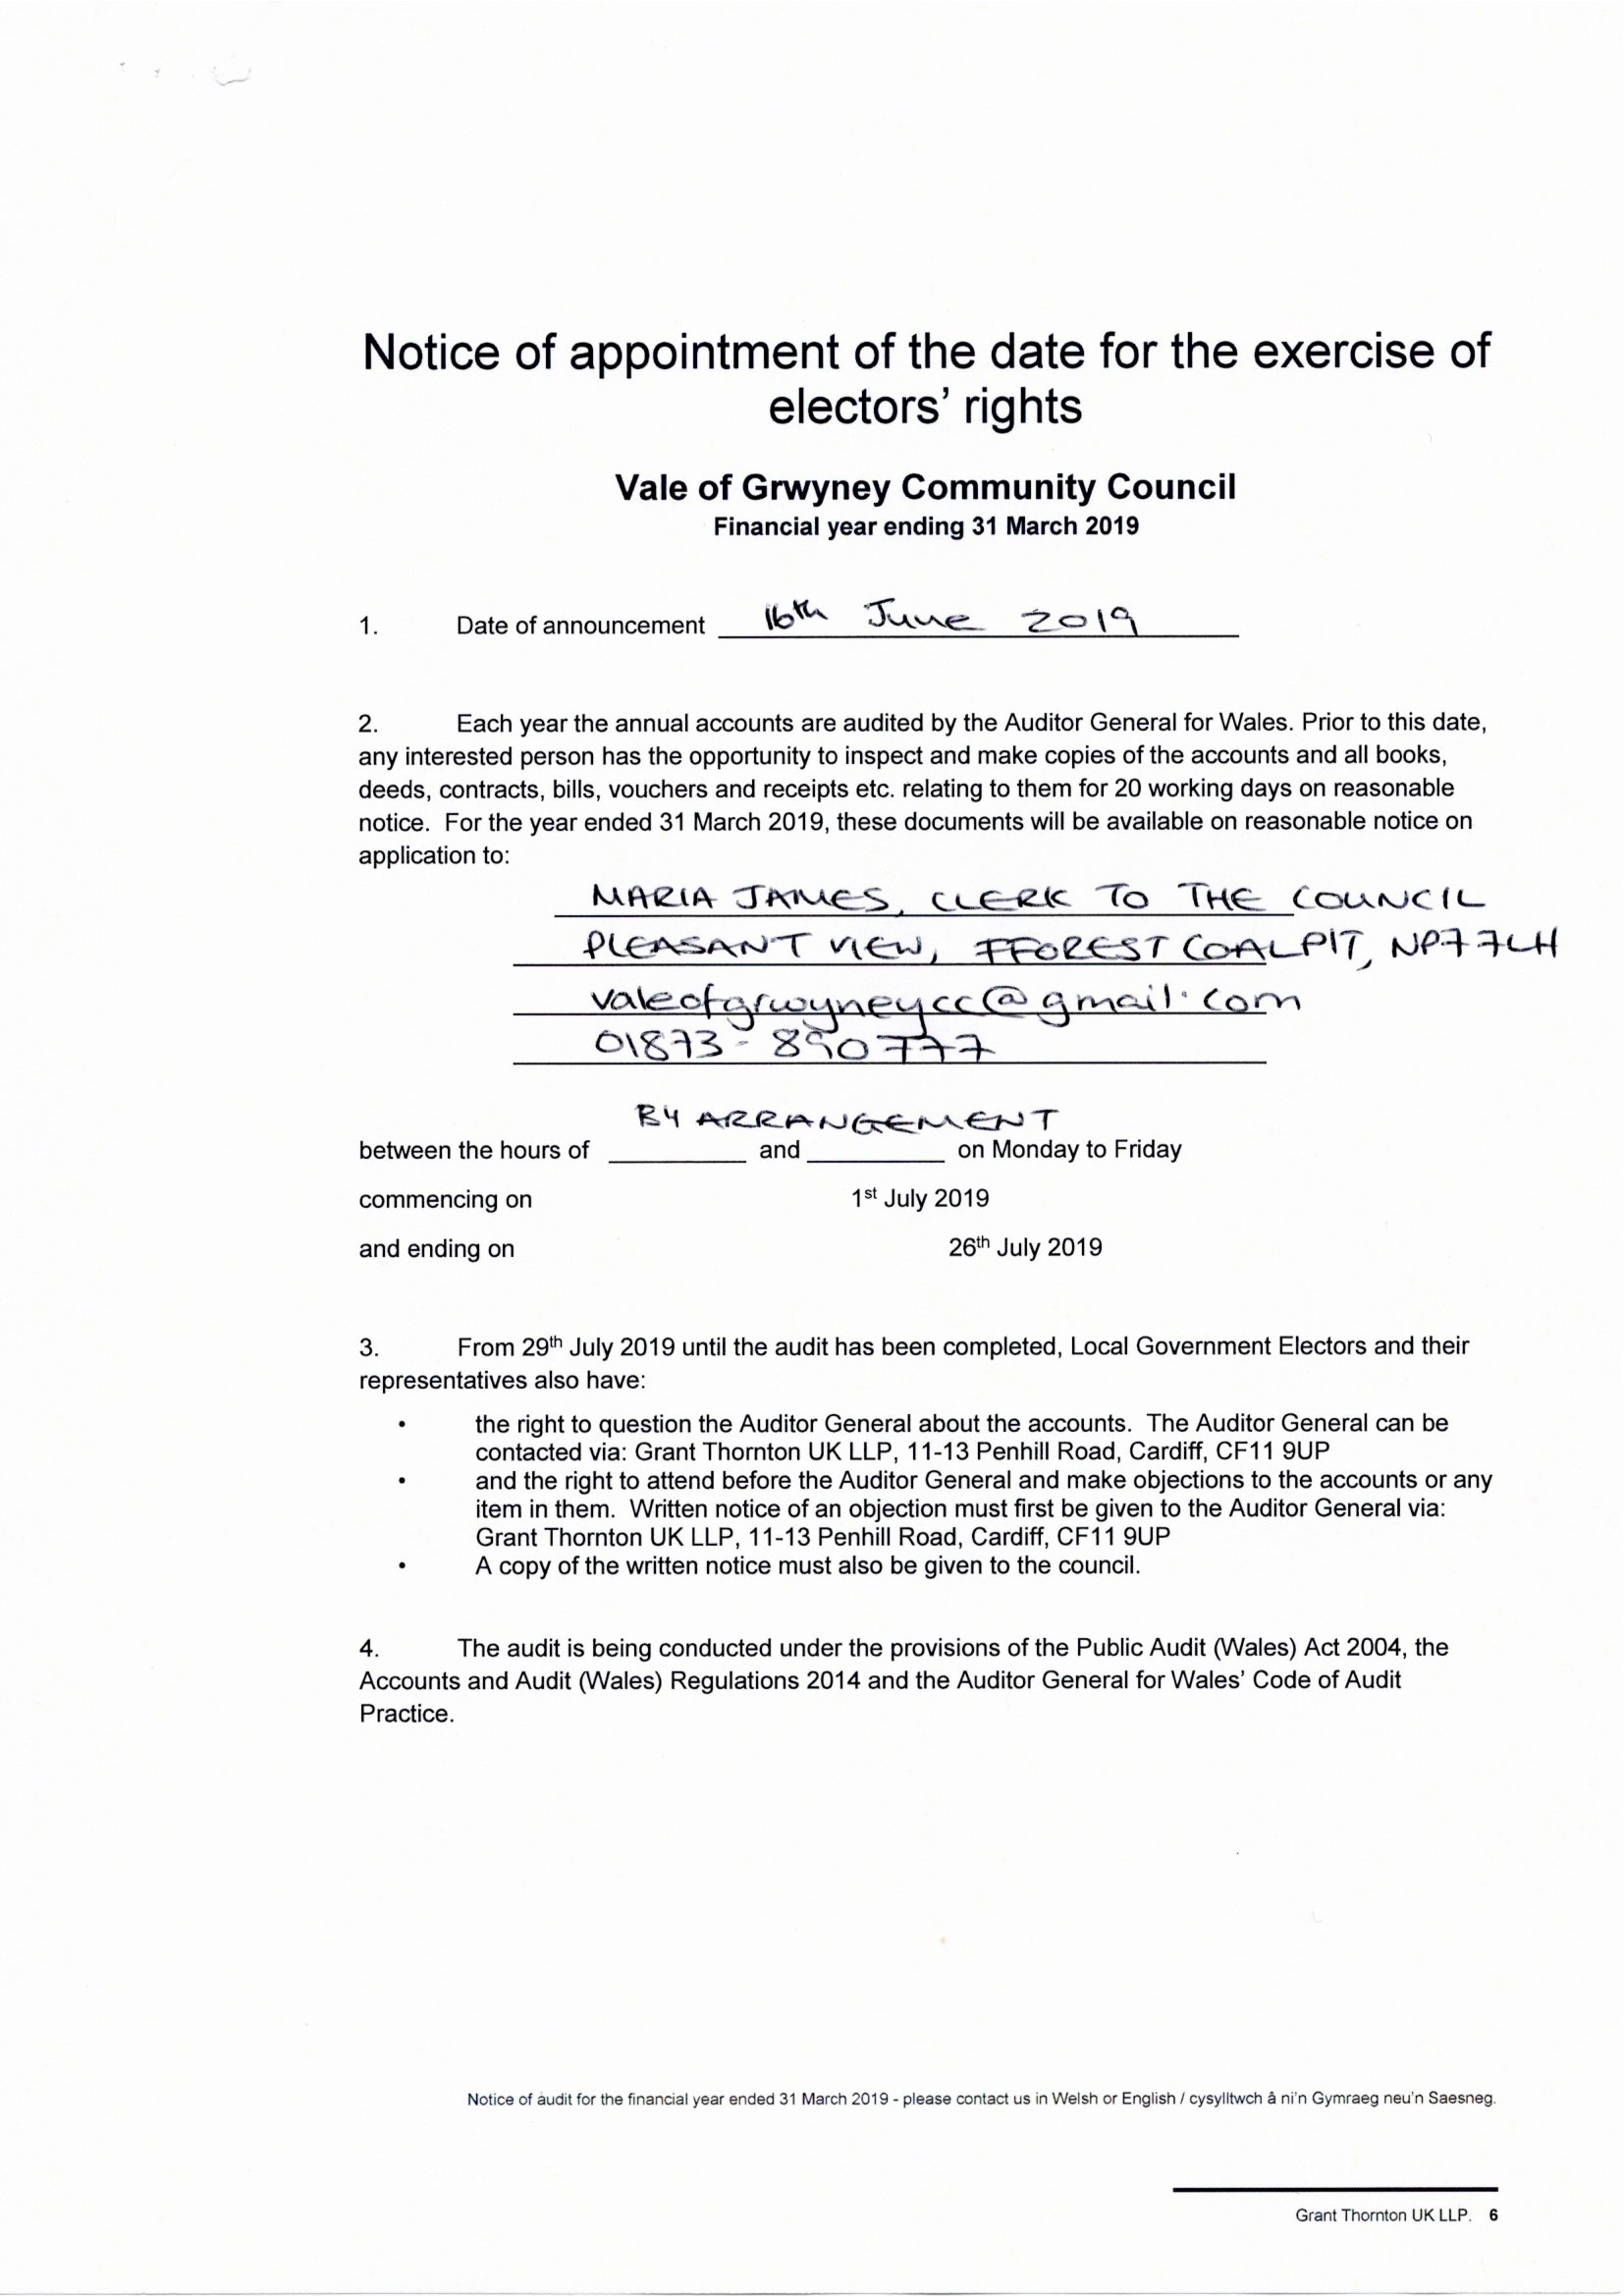 Notice of Appt to exercise electors rights